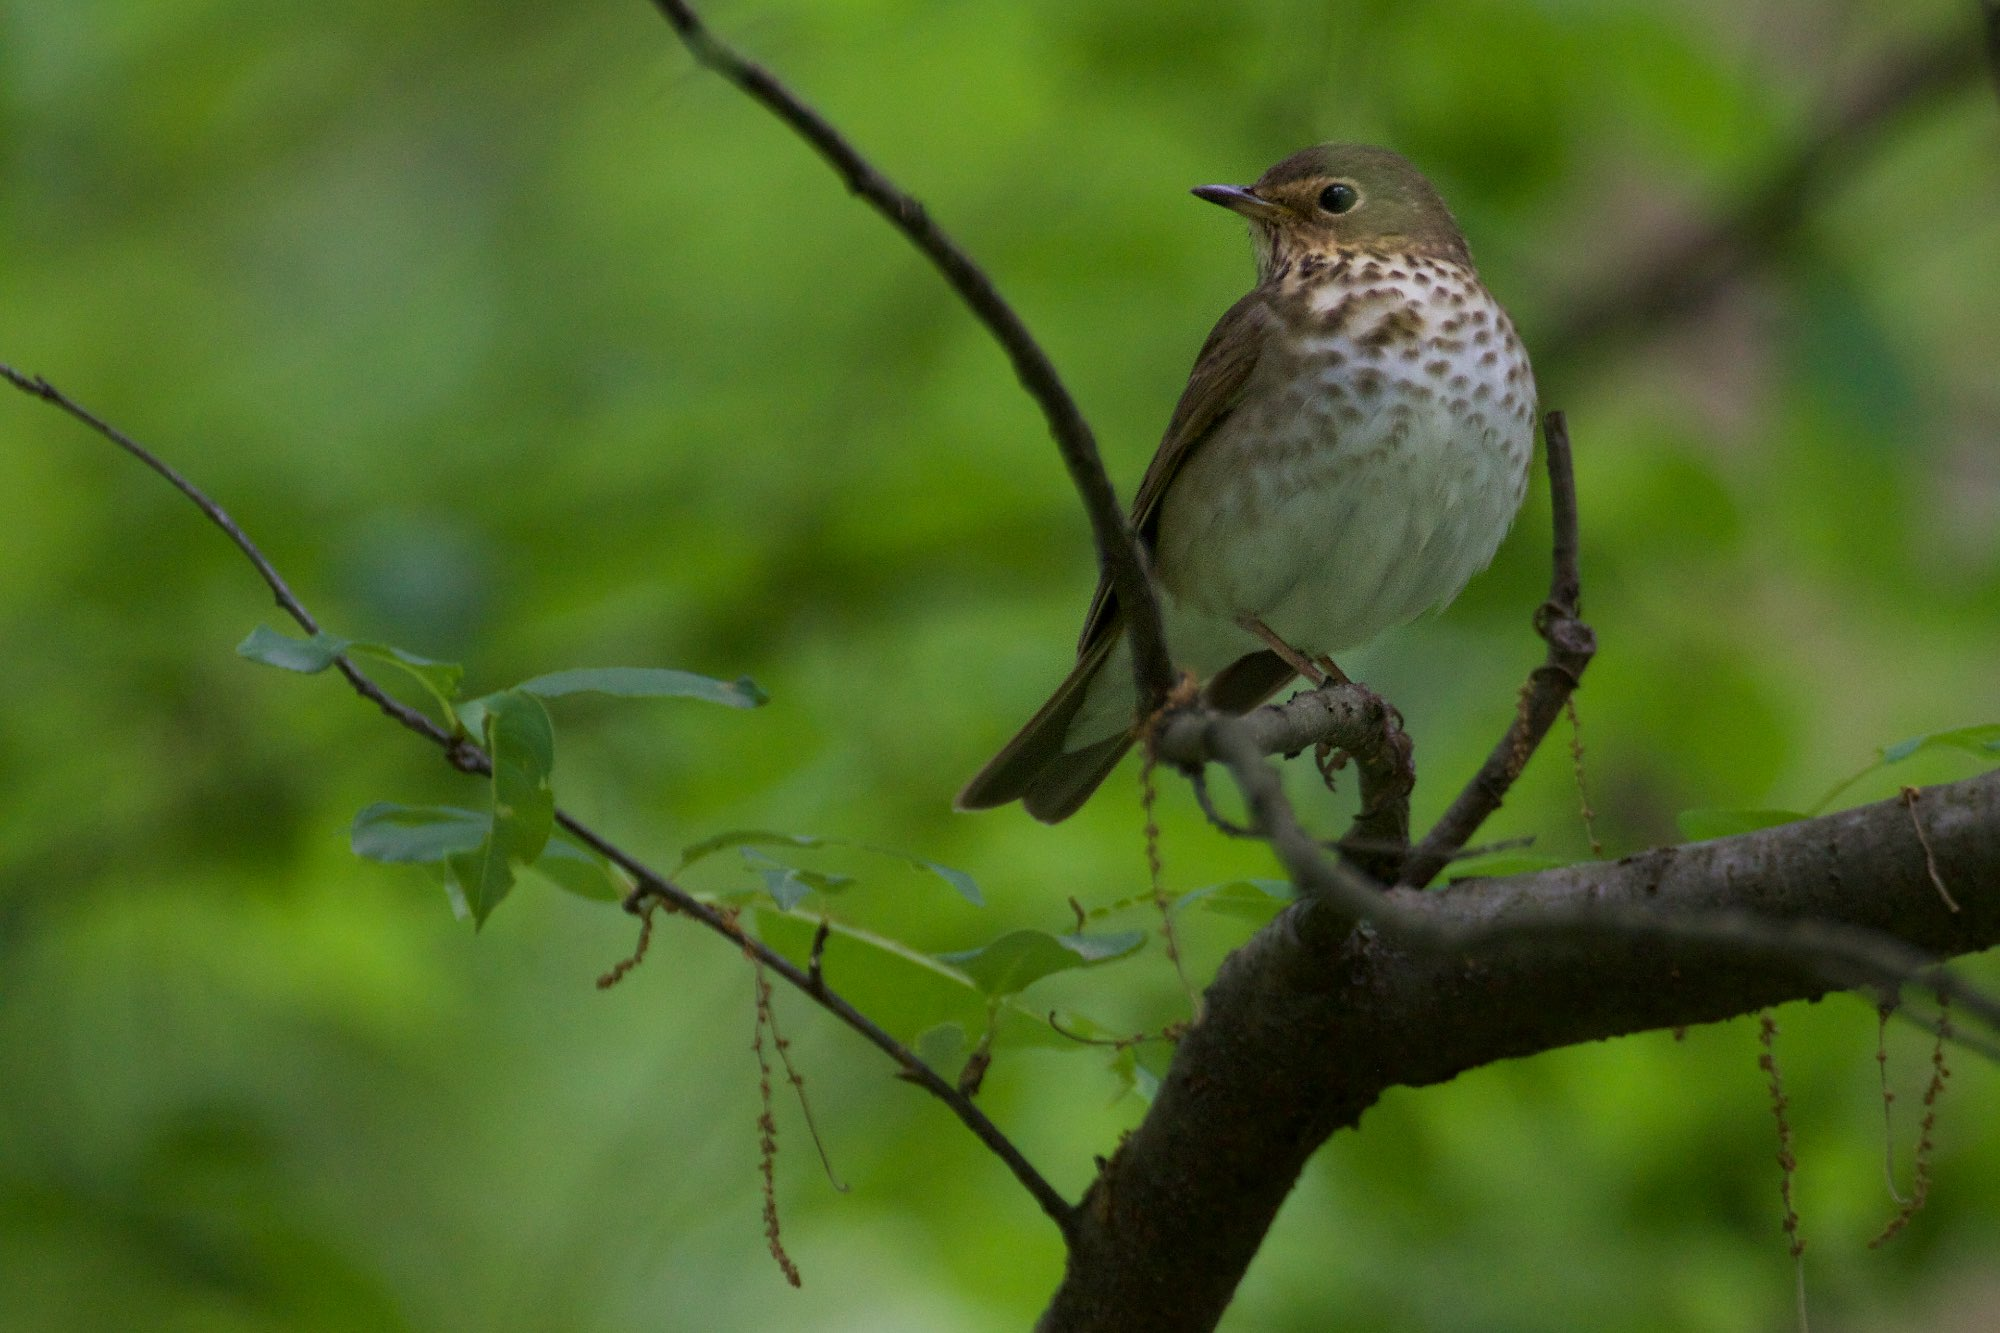 A hermit thrush in the Kennedy Forest of Forest Park. Click on the image to view more photographs.